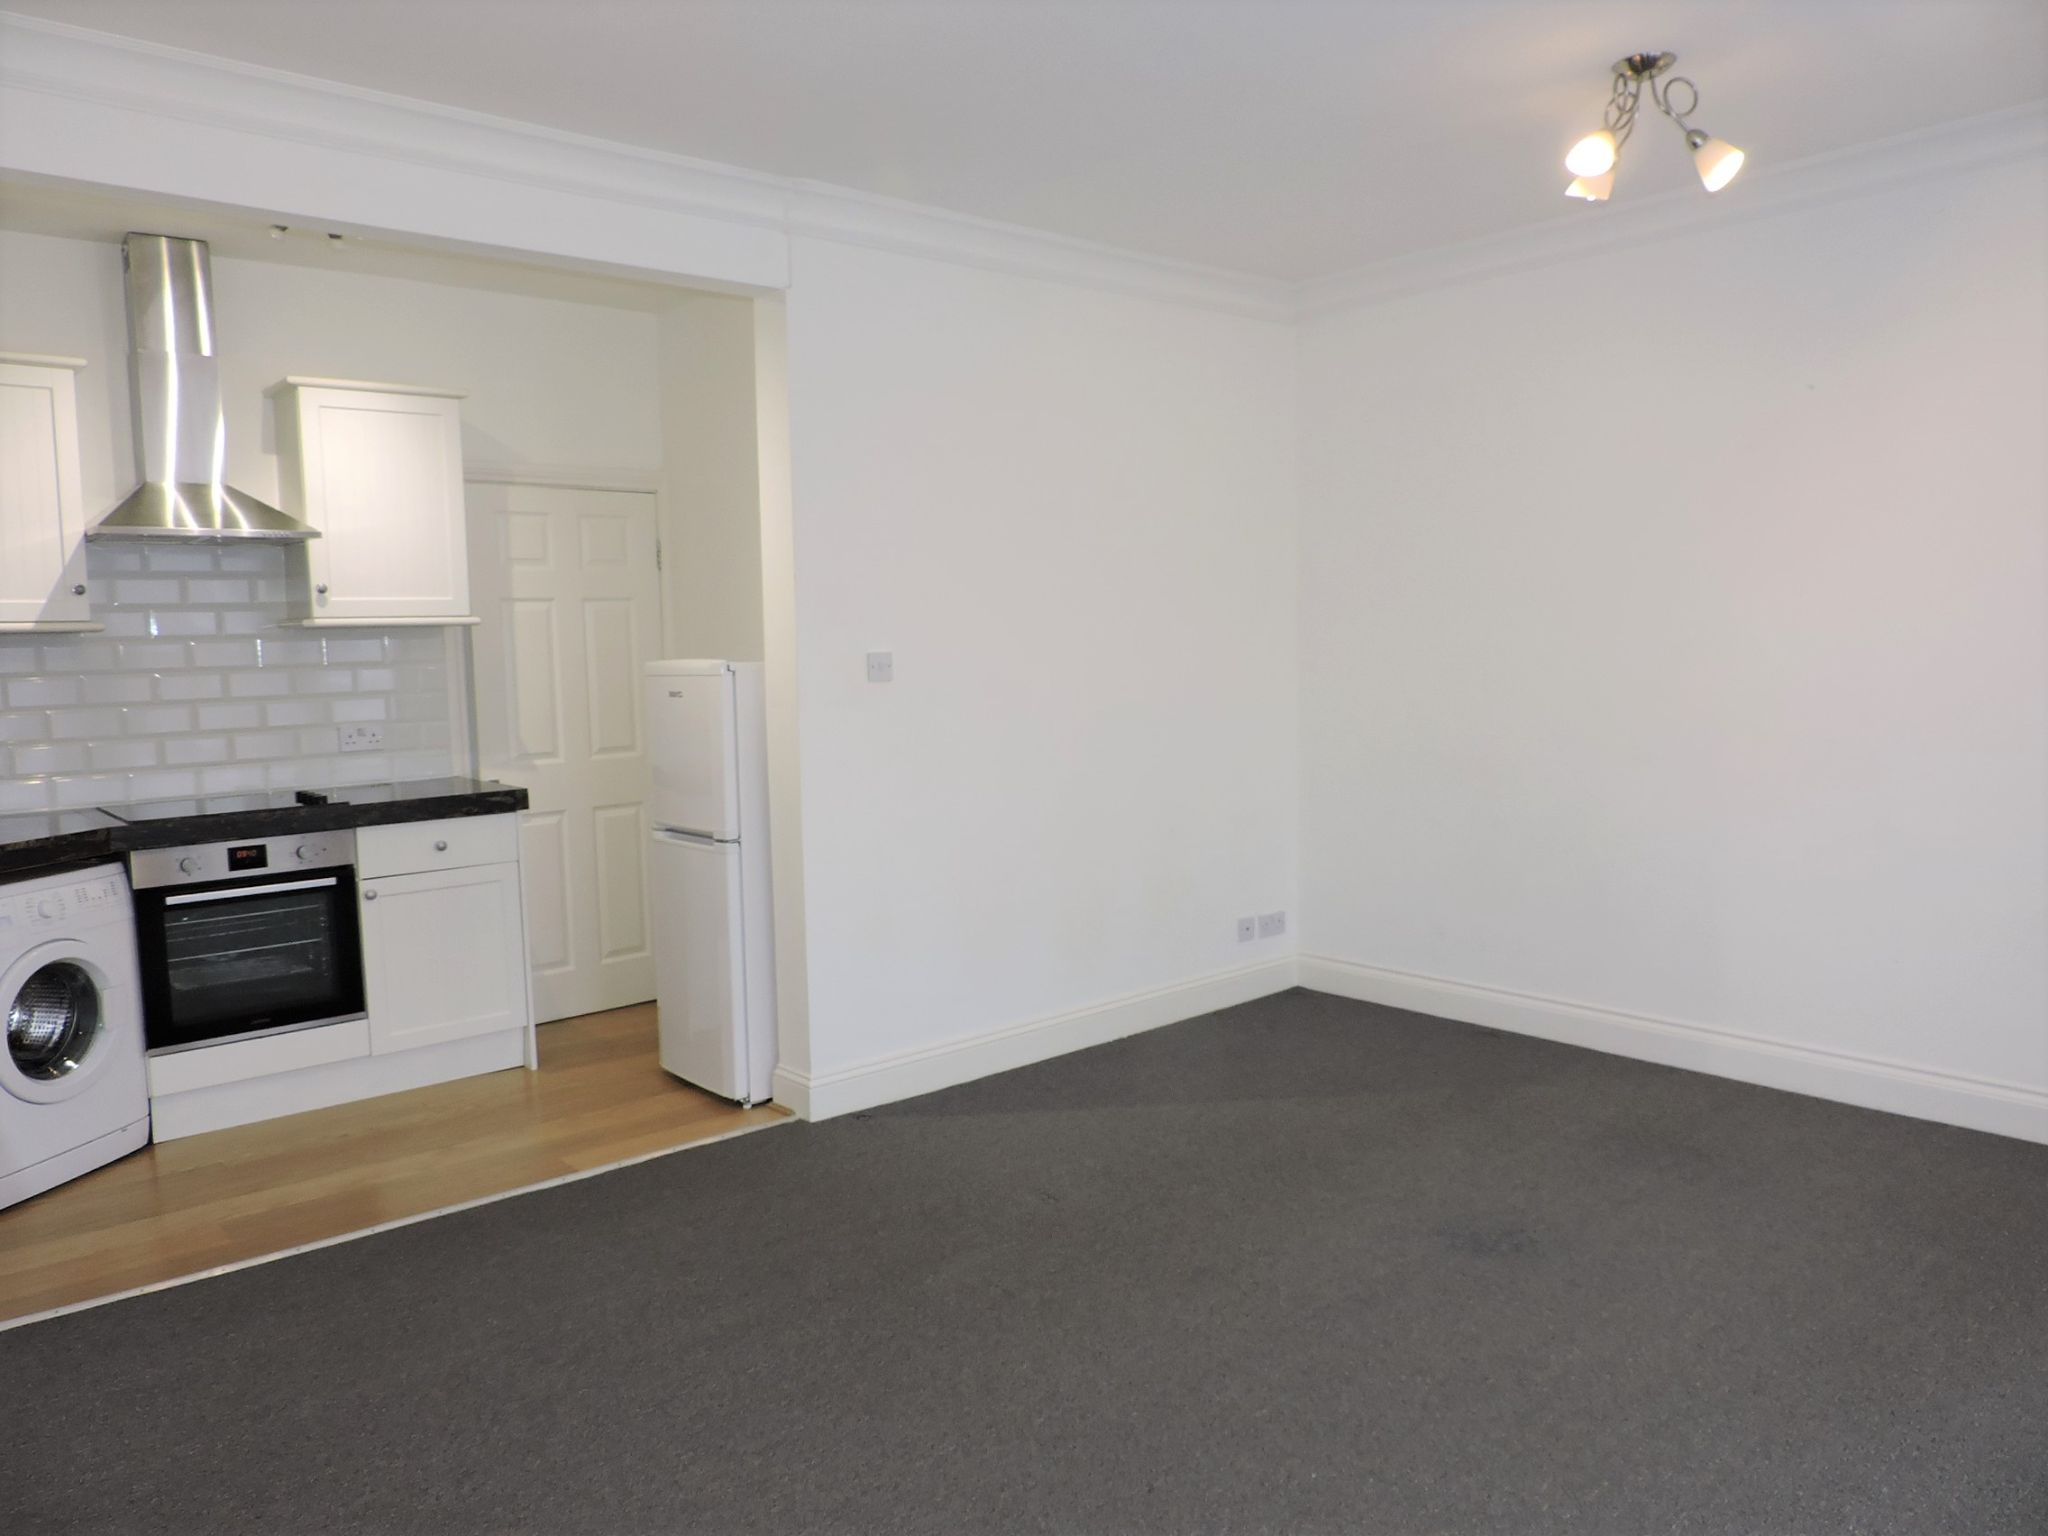 1 bedroom flat flat/apartment Let in New Malden - Photograph 4